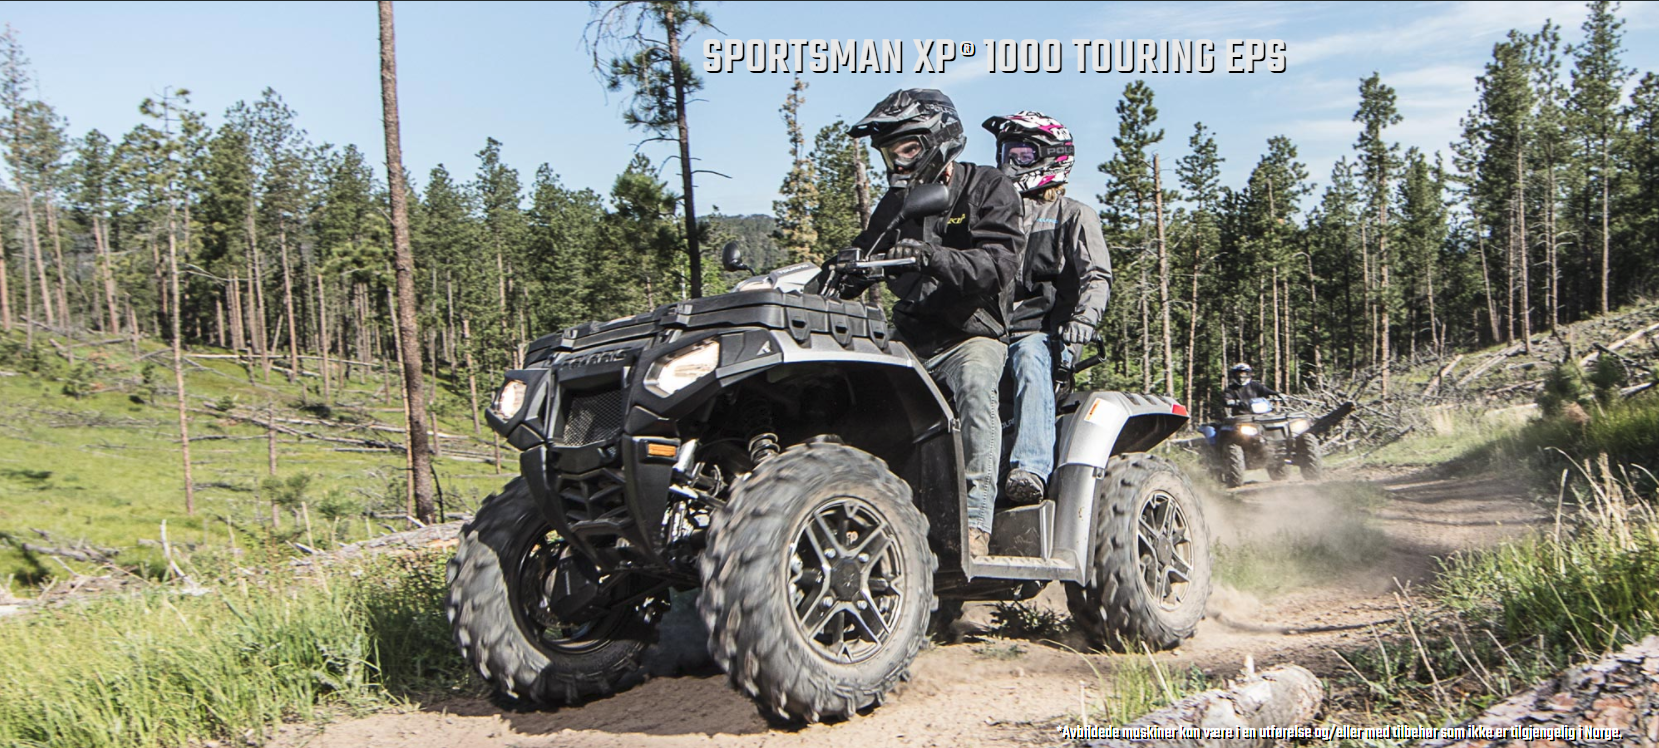 Sportsman XP 1000 Touring EPS